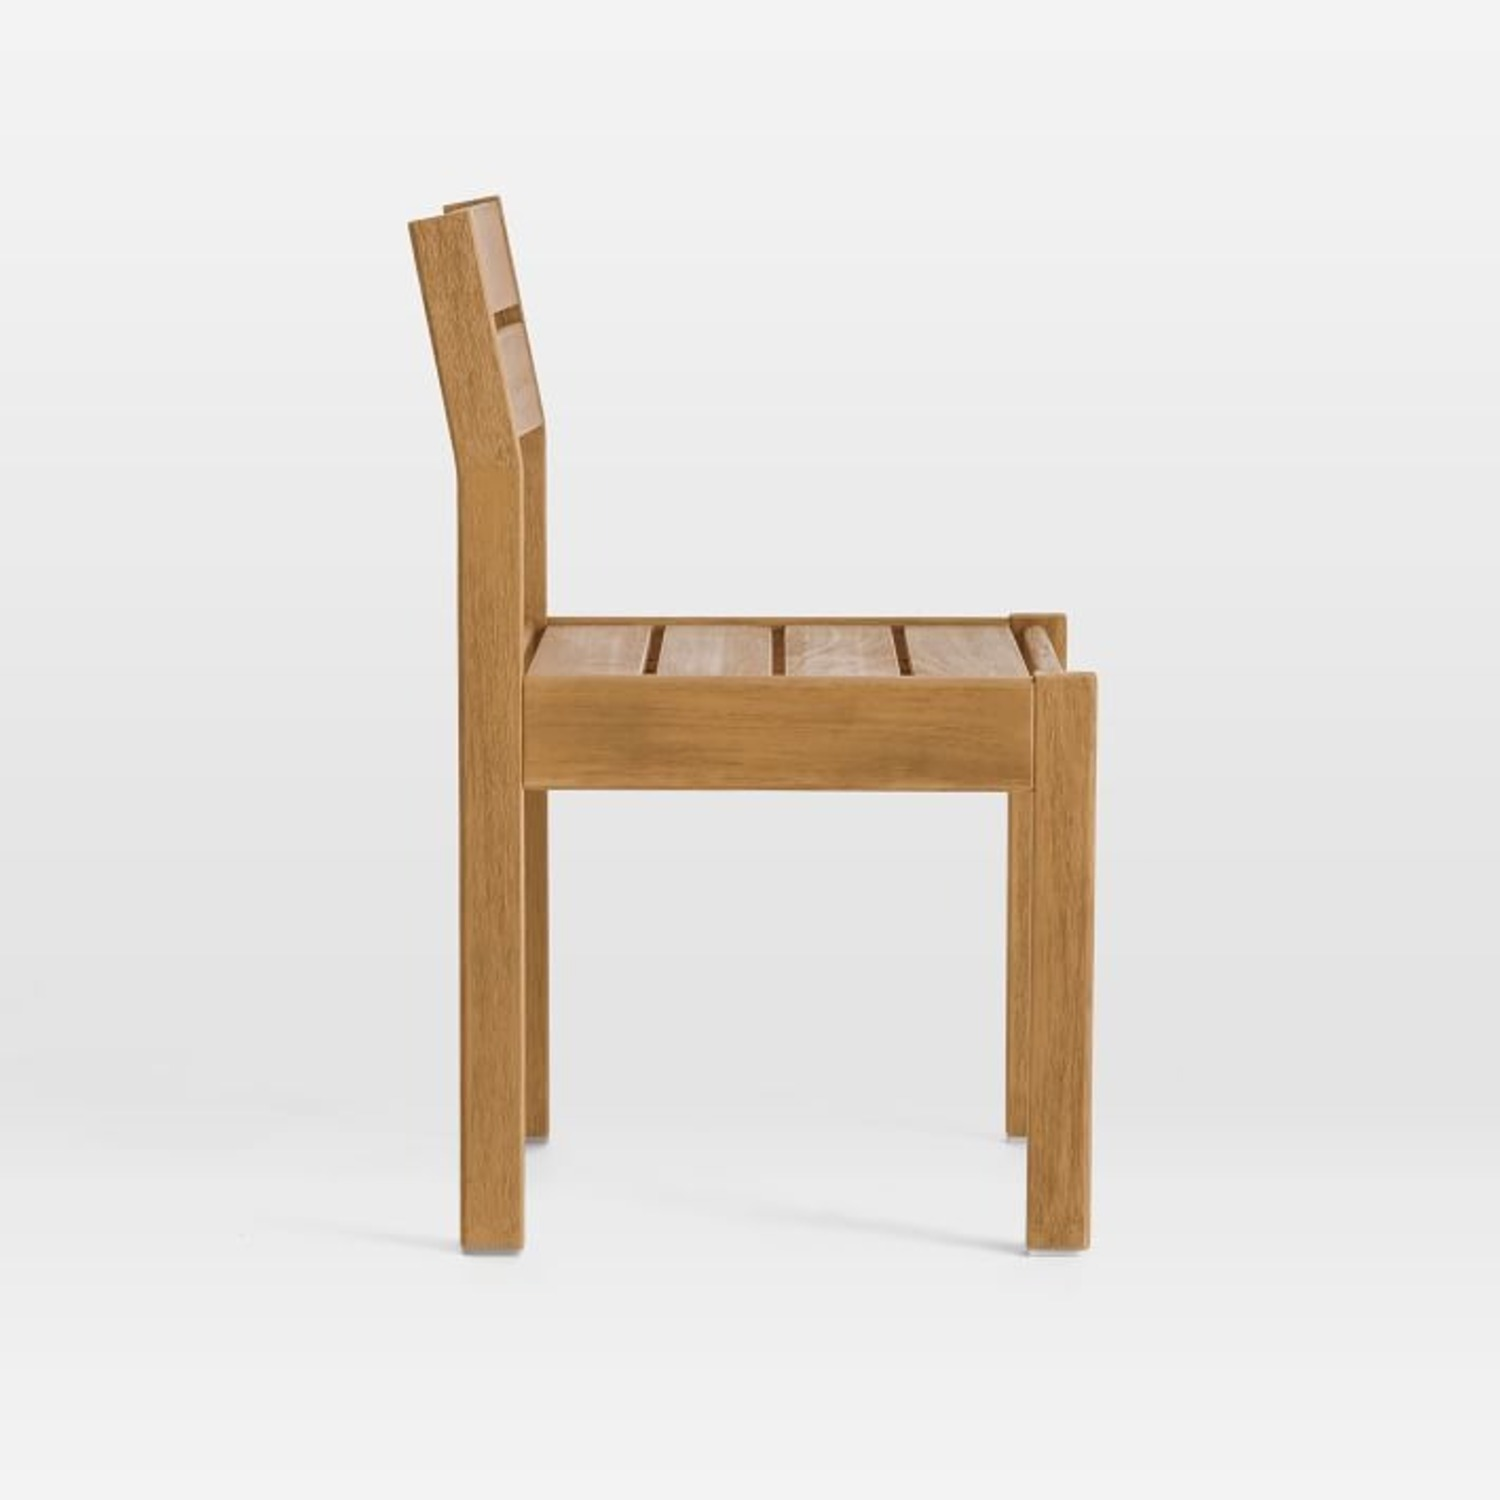 West Elm Playa Outdoor Dining Chair - image-2